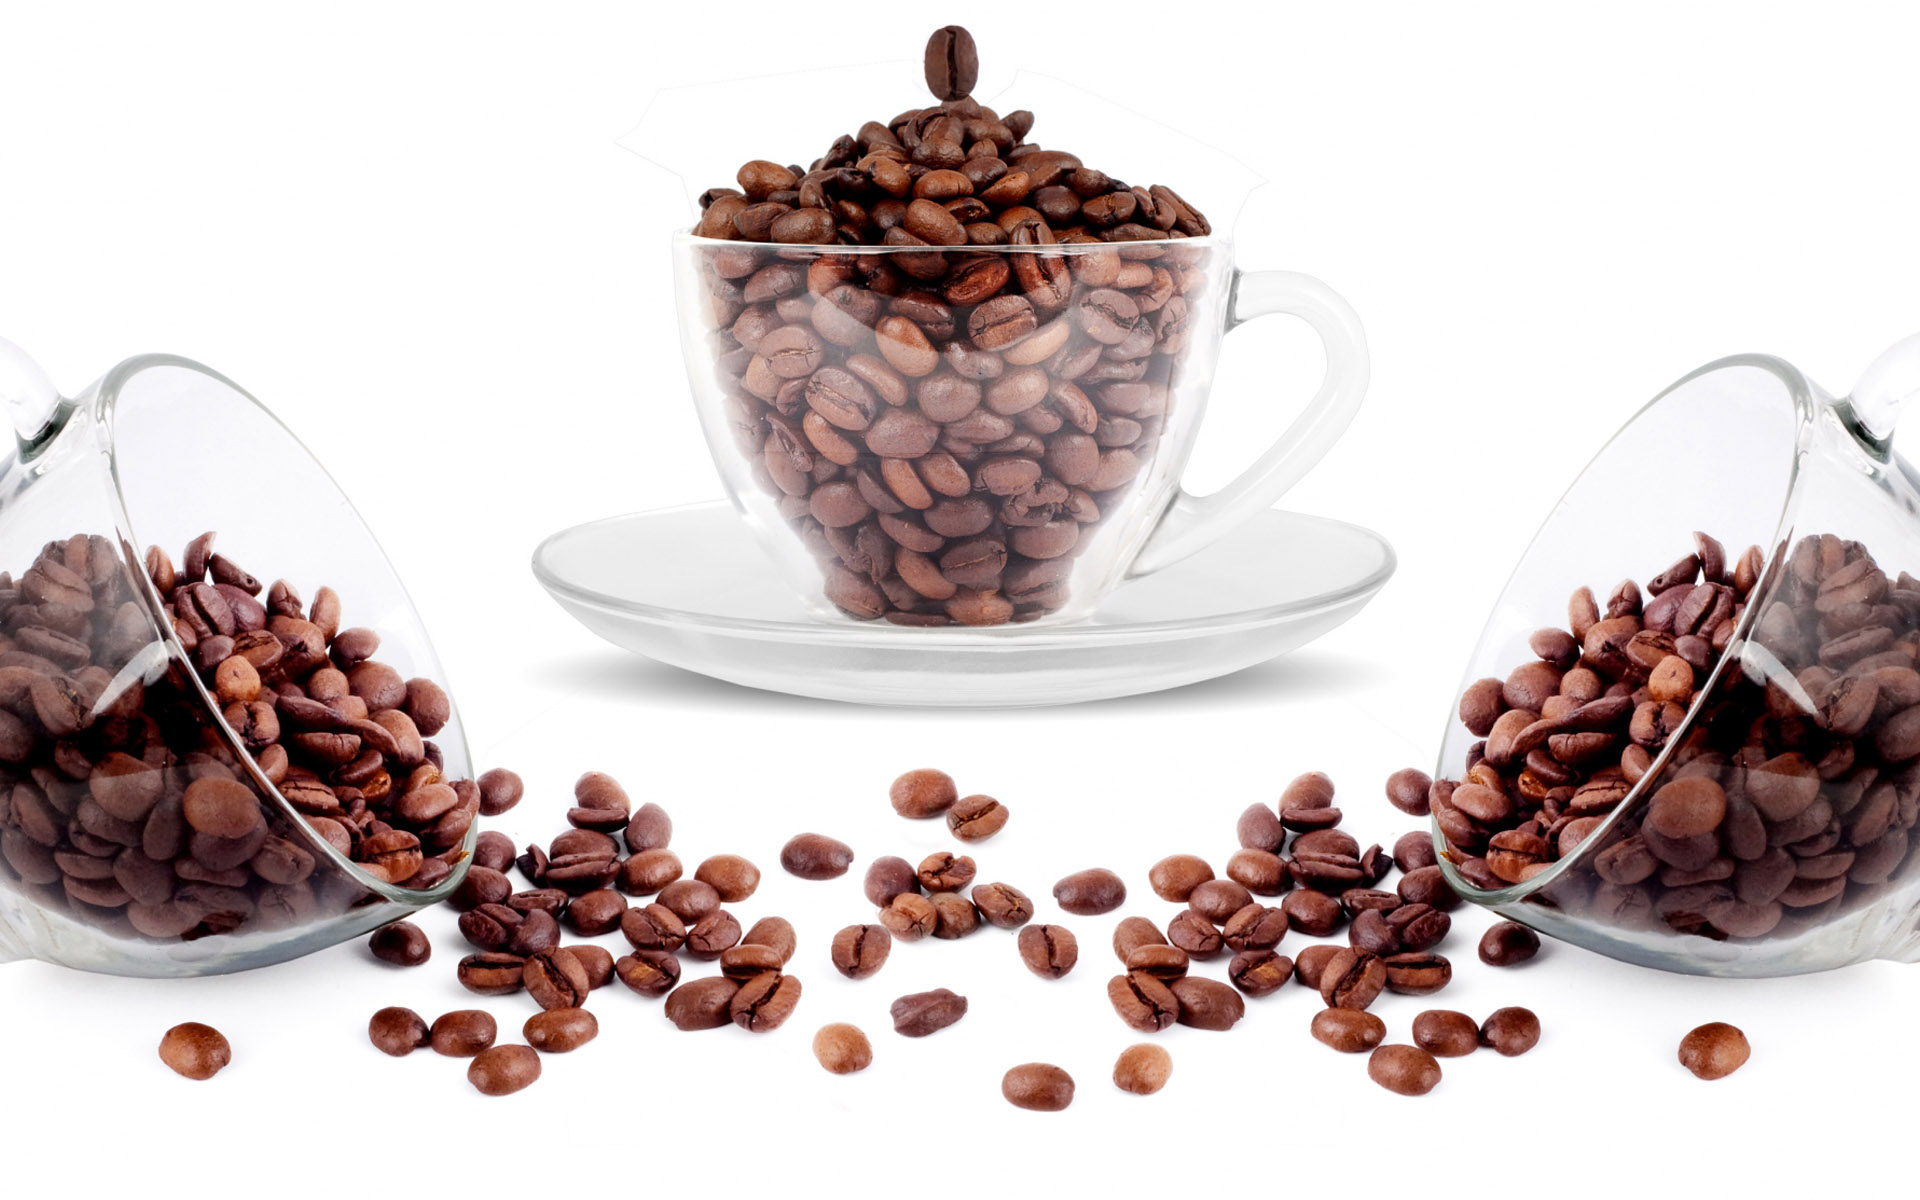 Coffee and coffee beans close-up 15421